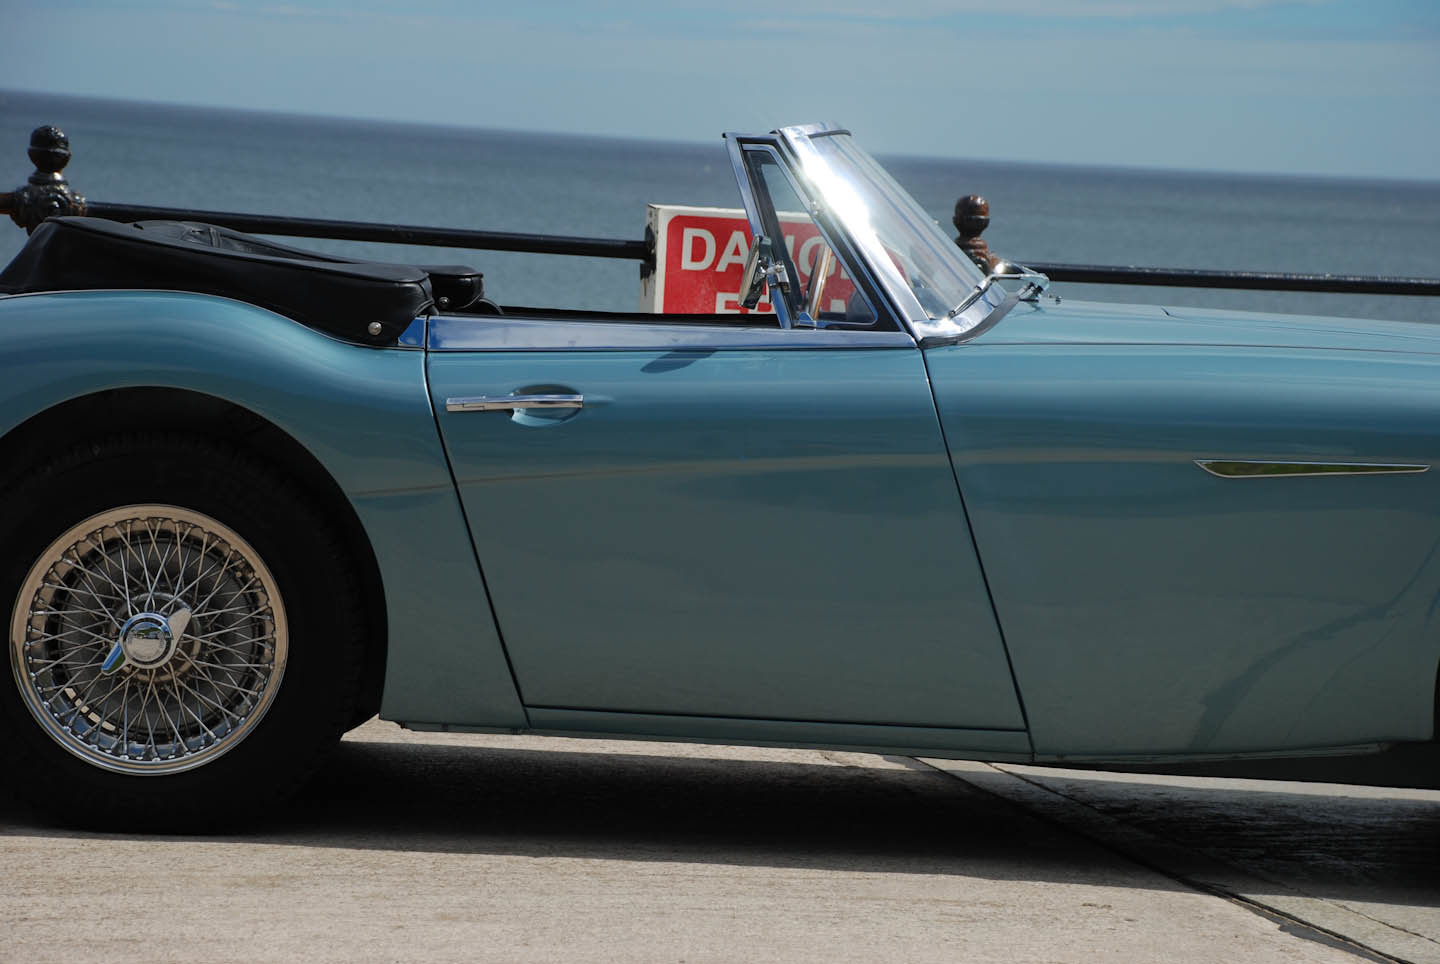 1962 Austin Healey 3000 Mk 2a BJ7 For Sale (picture 2 of 10)